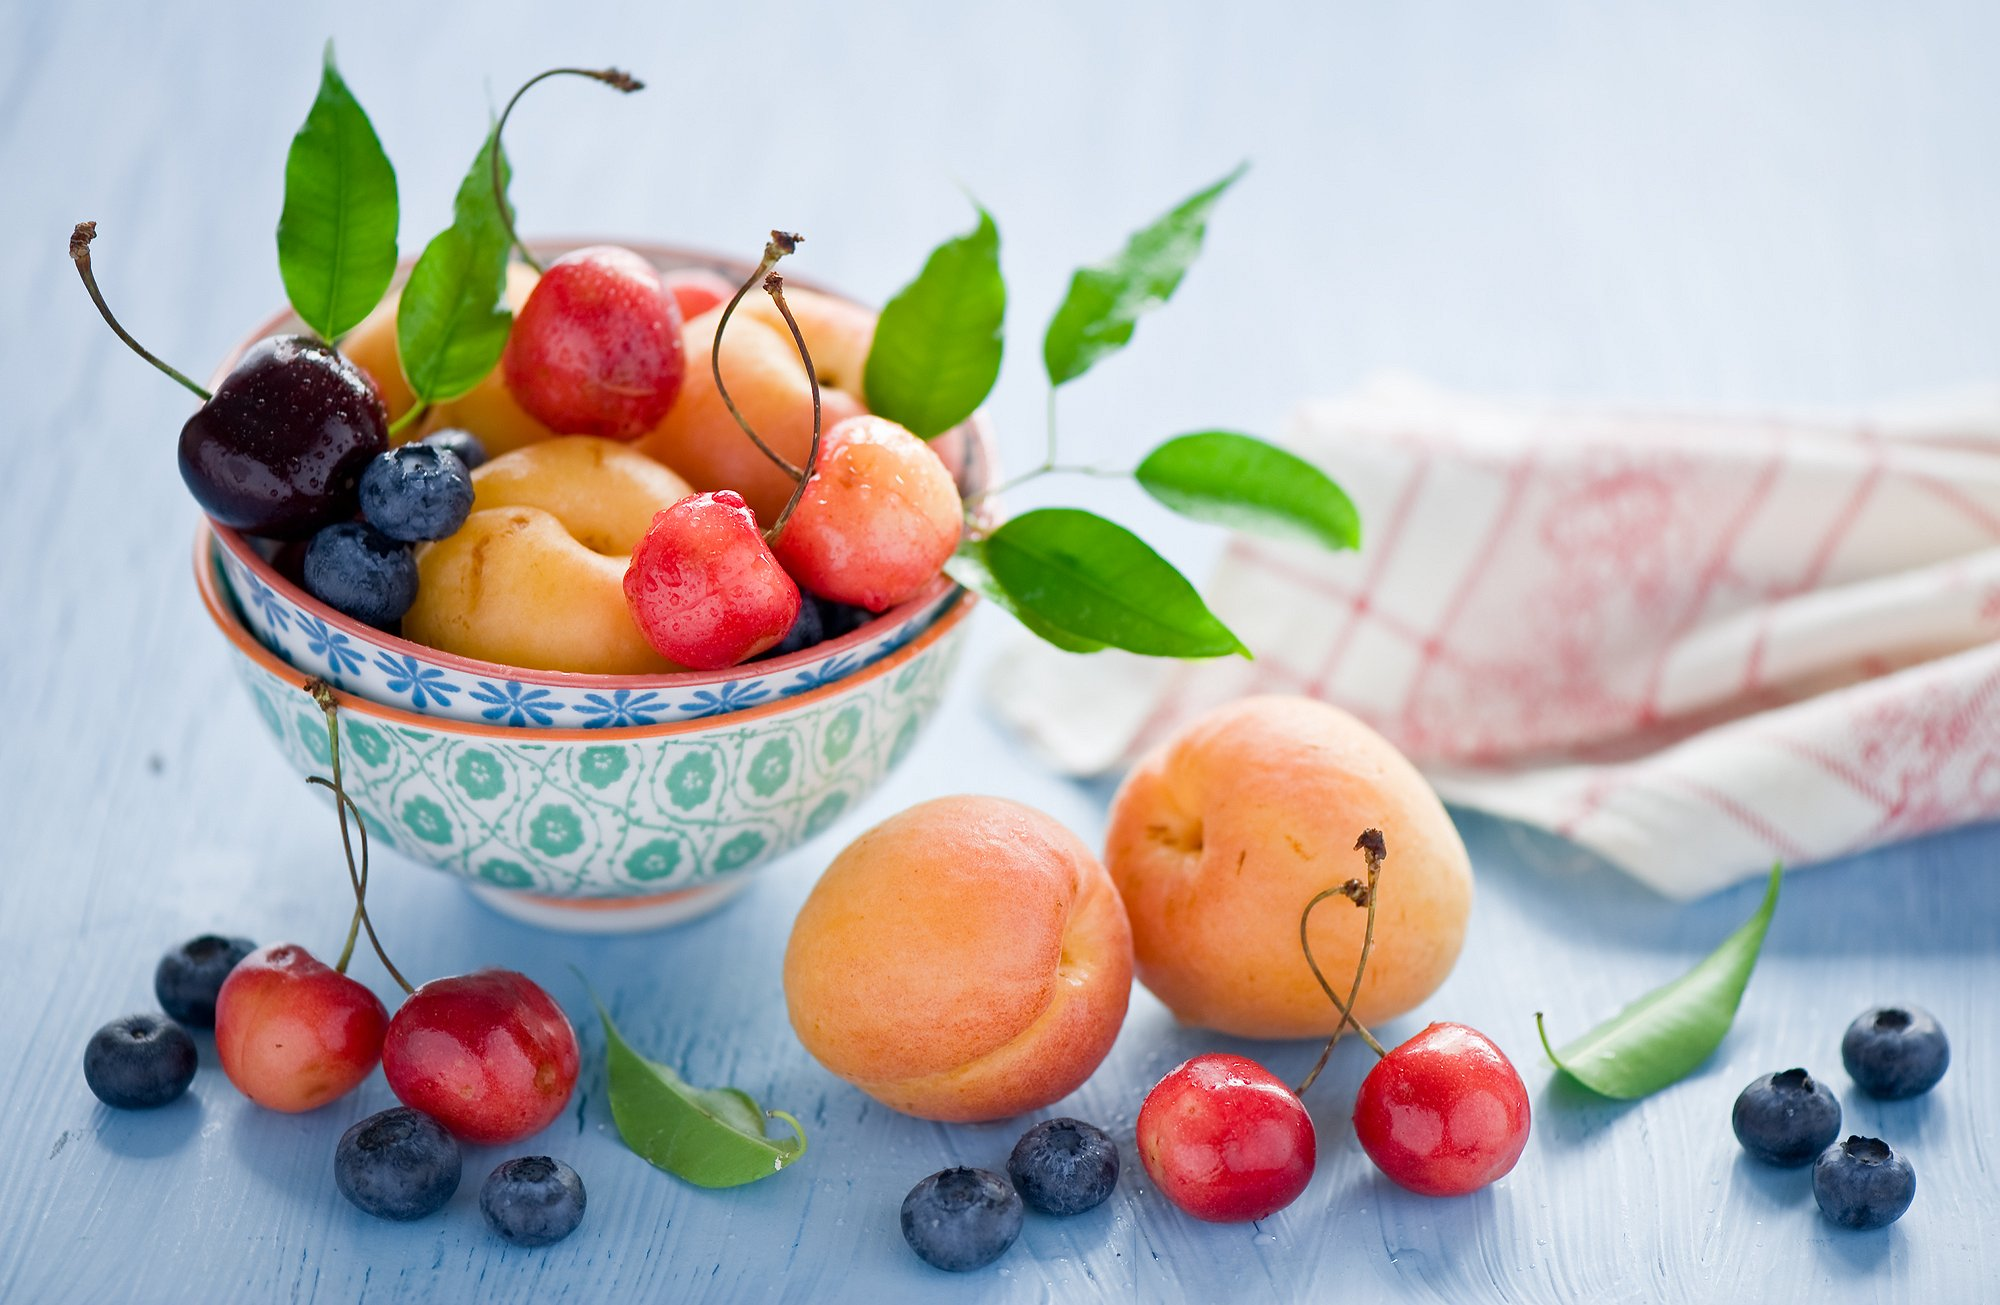 http://www.magic4walls.com/wp-content/uploads/2014/02/food-bowl-fruit-wallpaper-hd-fresh-peach-cherries-blueberries-leaves.jpg